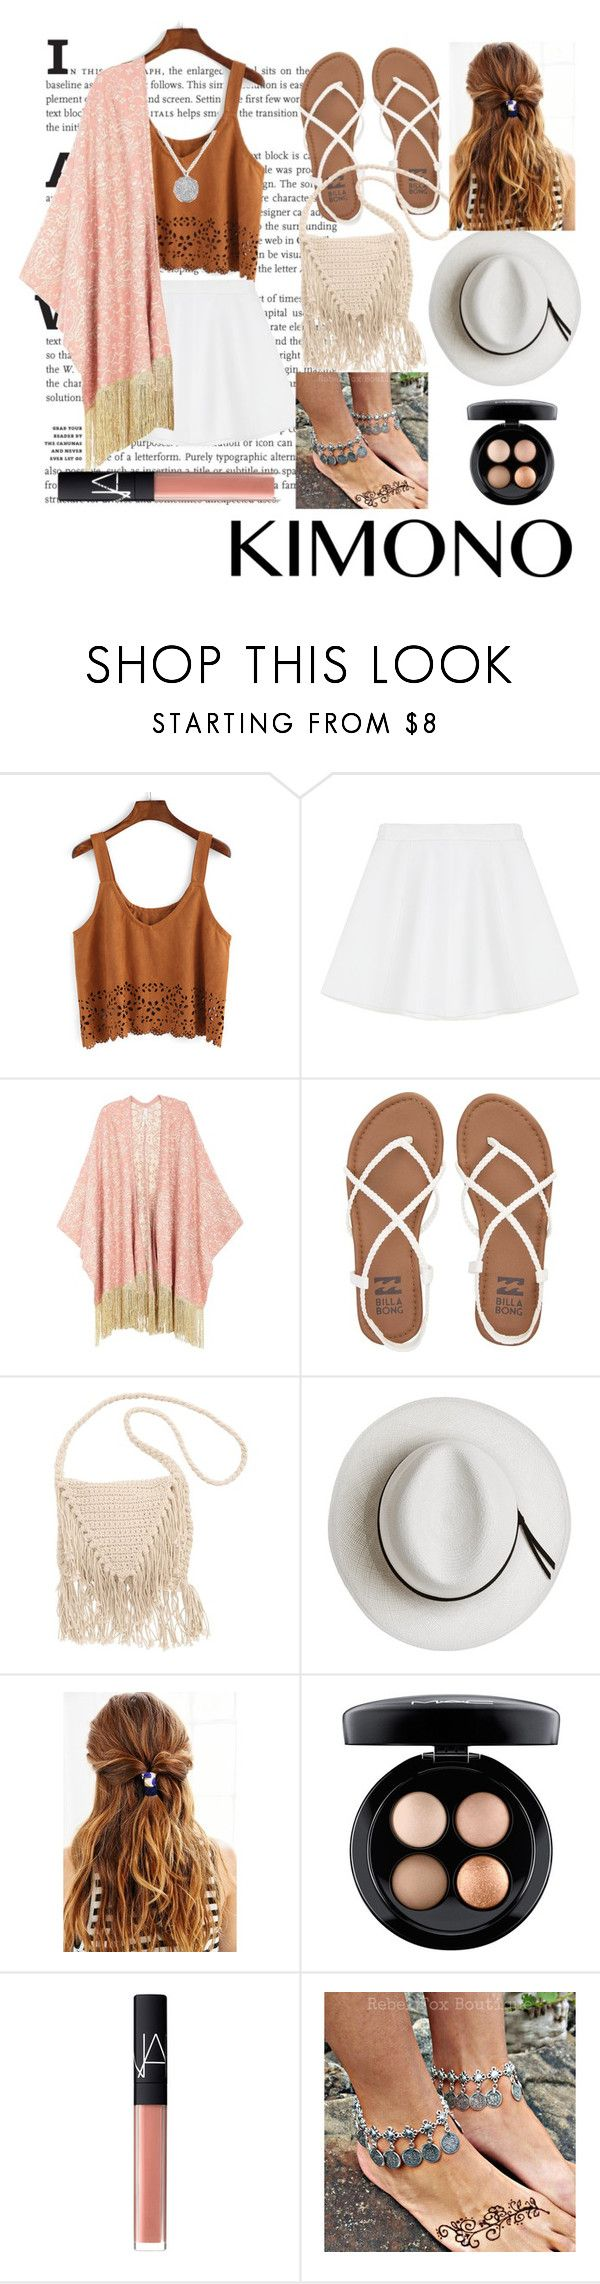 """""""Untitled #7"""" by aballaycandela ❤ liked on Polyvore featuring RED Valentino, Melissa McCarthy Seven7, Billabong, Calypso Private Label, Urban Outfitters, MAC Cosmetics, NARS Cosmetics, kimonos and plus size clothing"""